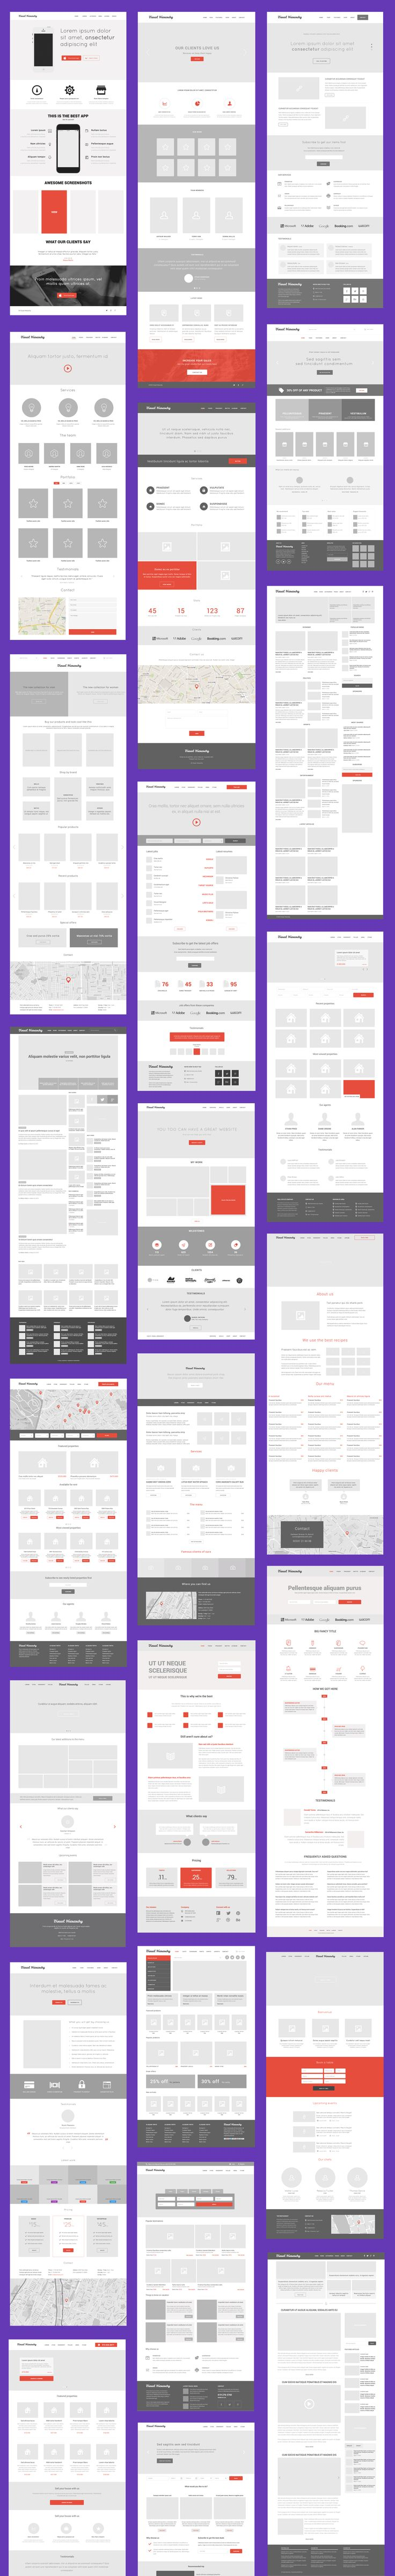 Zed – Essential Wireframe Kit for Web Designers | Visual Hierarchy